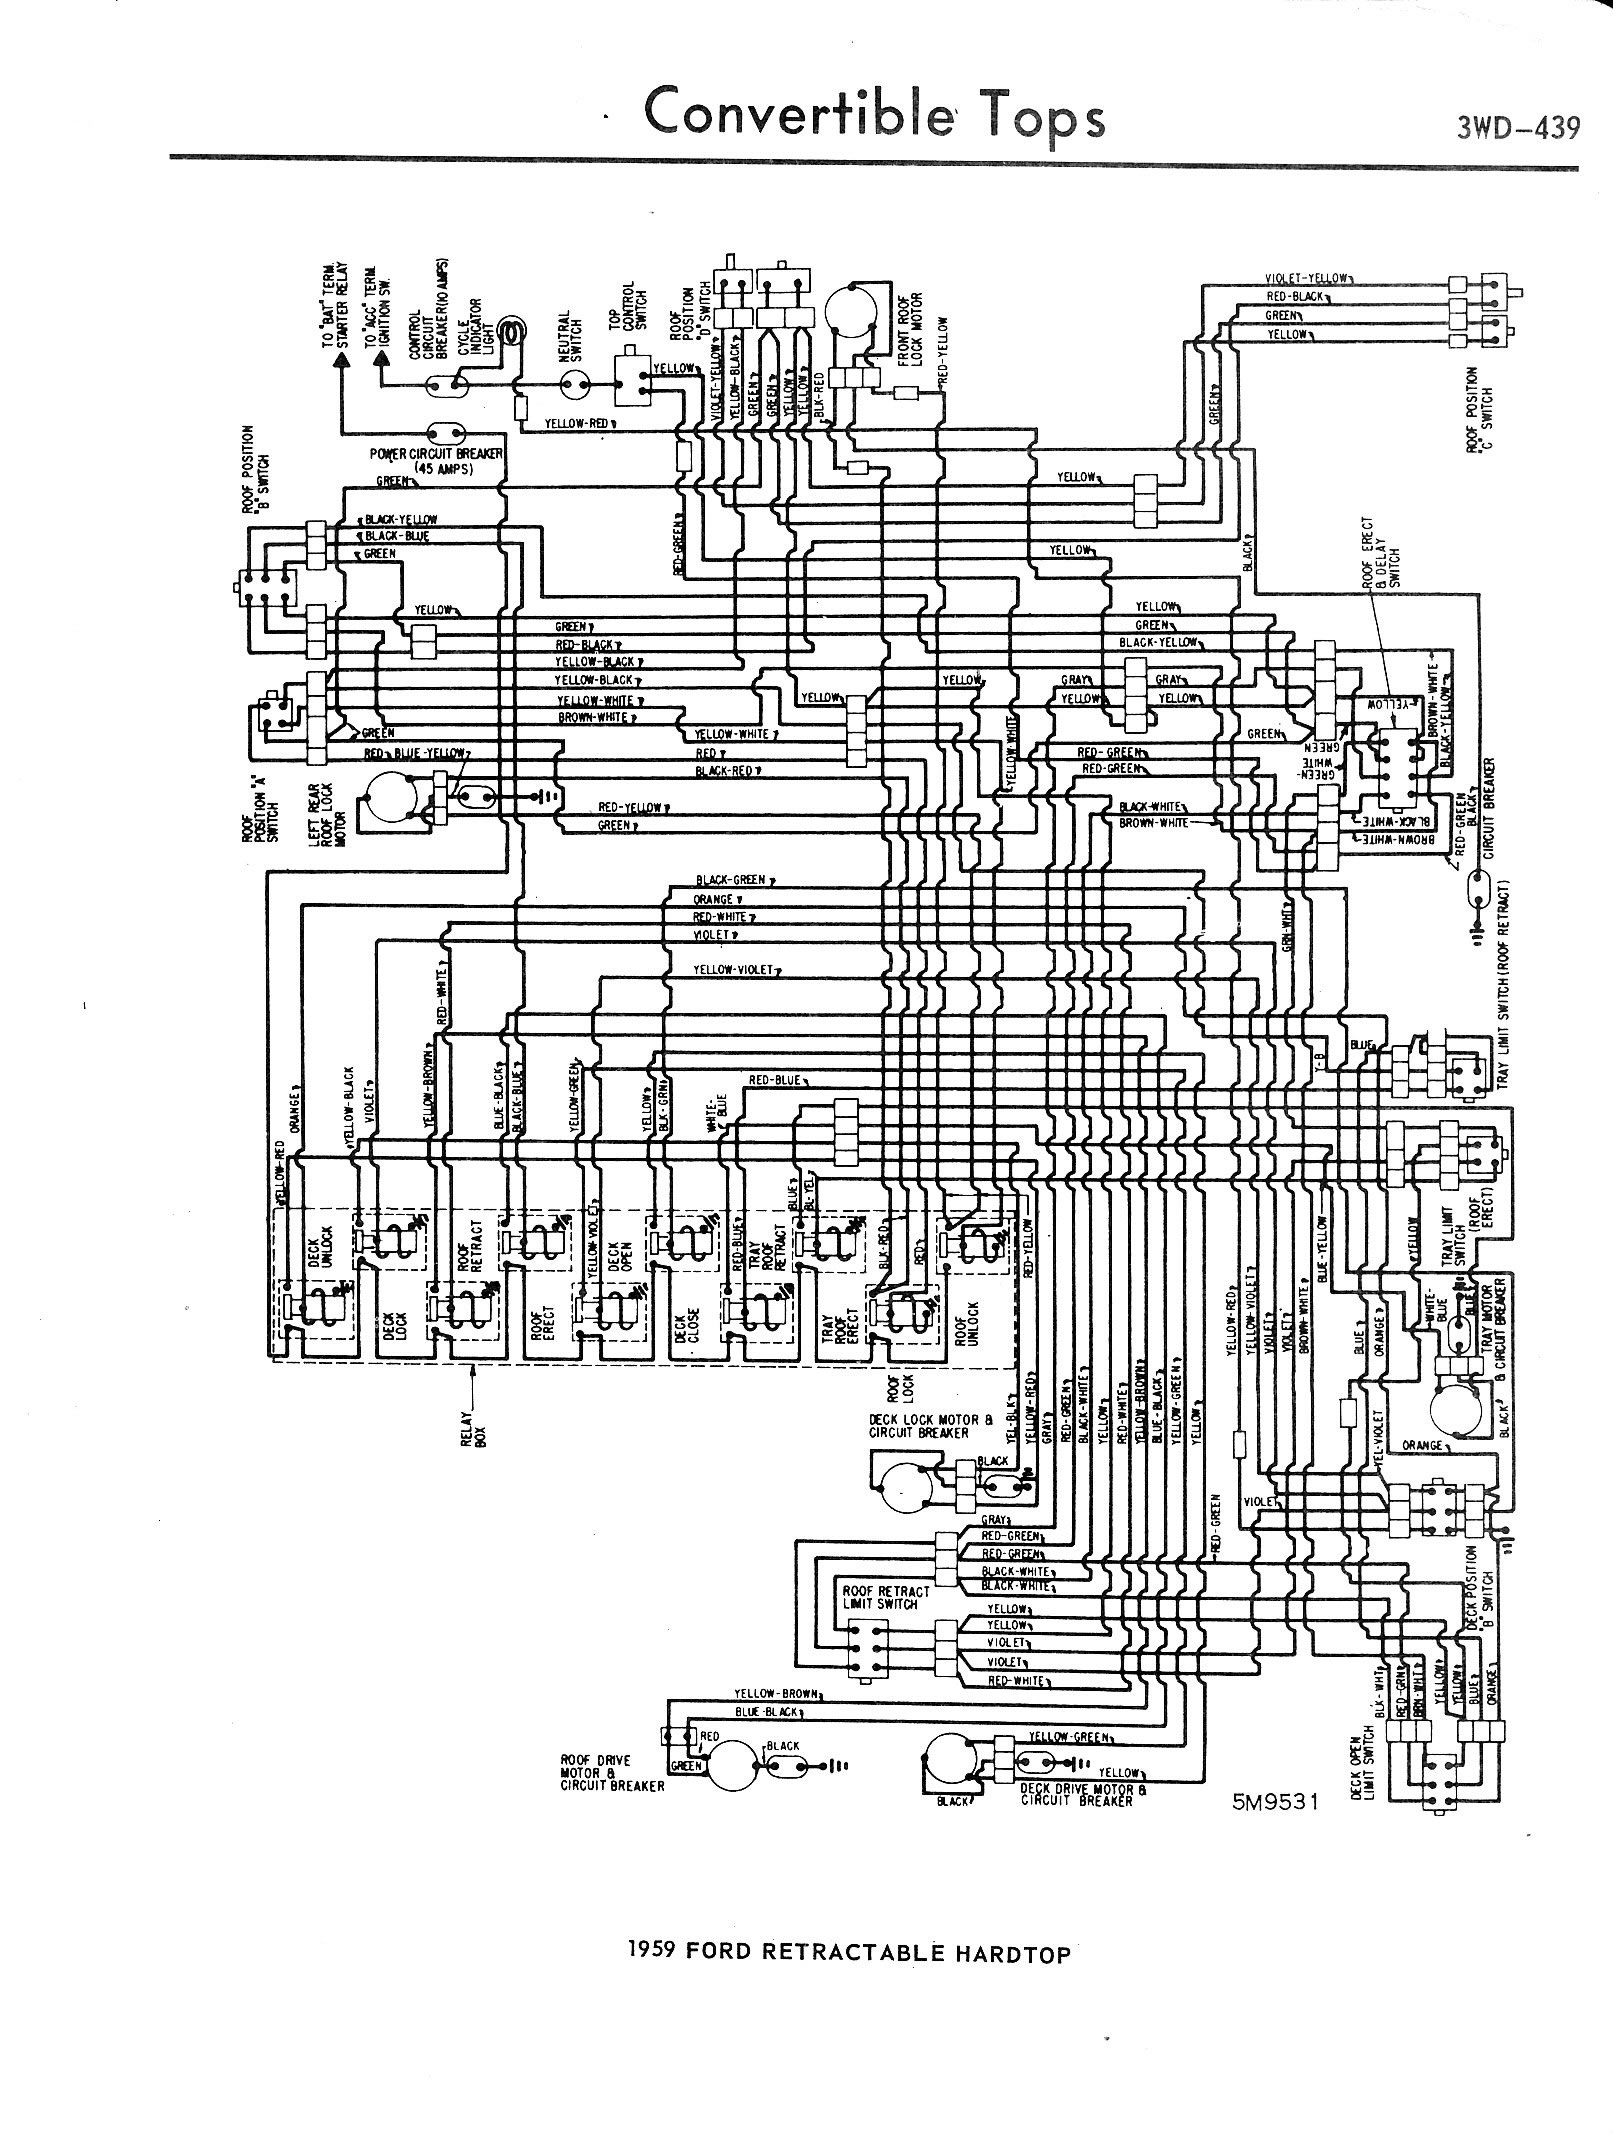 1957-1965 Accessory Wiring Diagrams / 3WD-439.jpg